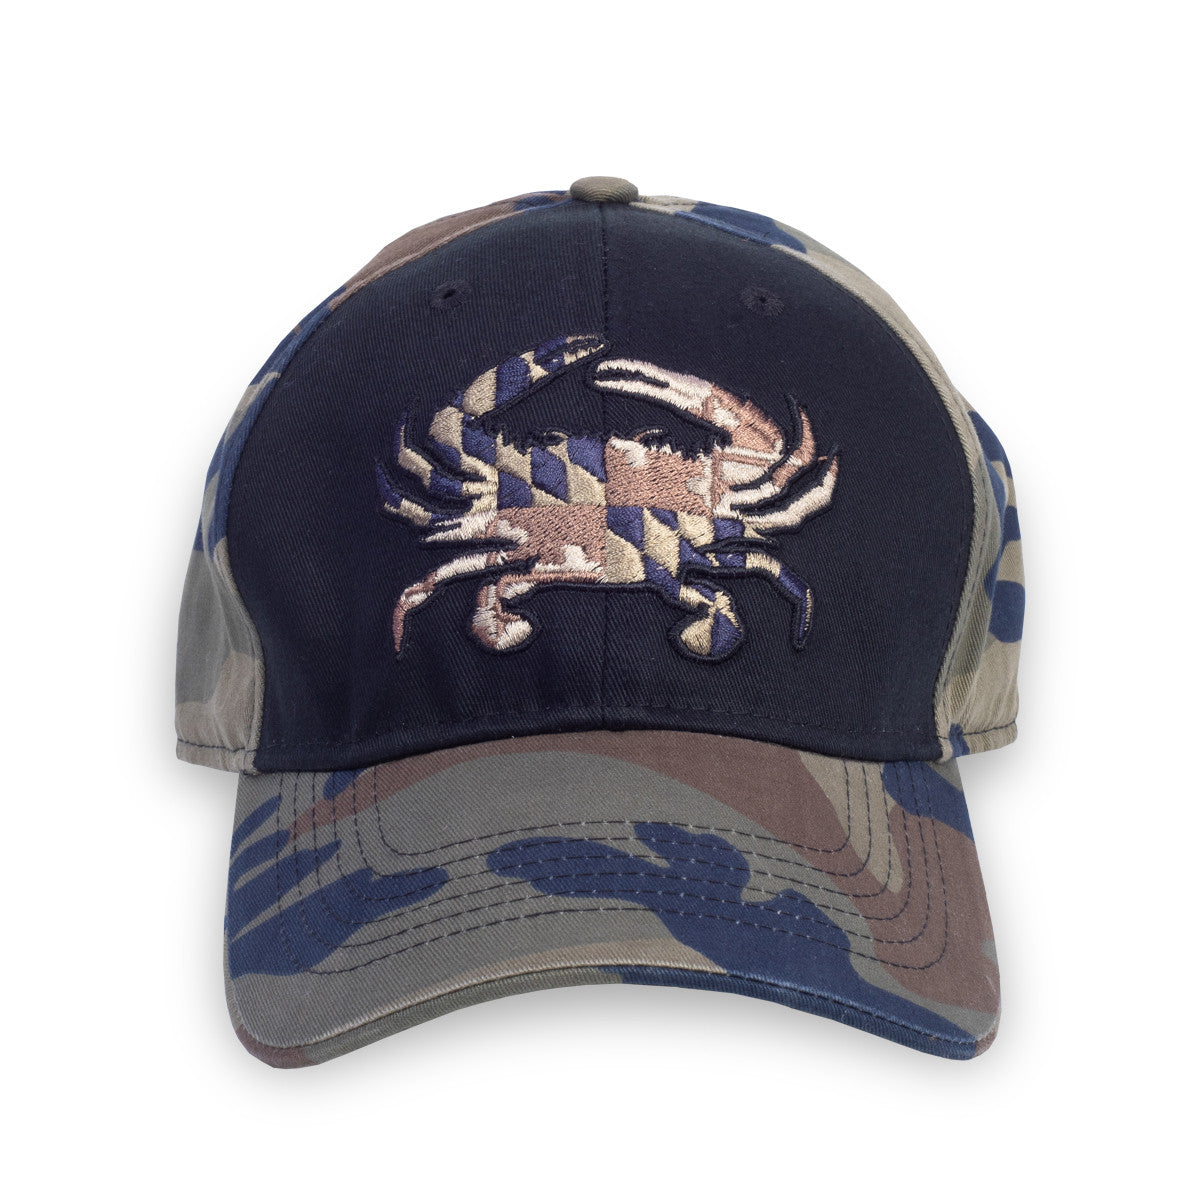 19e171efe7a coupon code legacy lacrosse crab hat black 5c070 cc9ee  real maryland  woodland flag crab hat maryland o mine d7d14 2f046